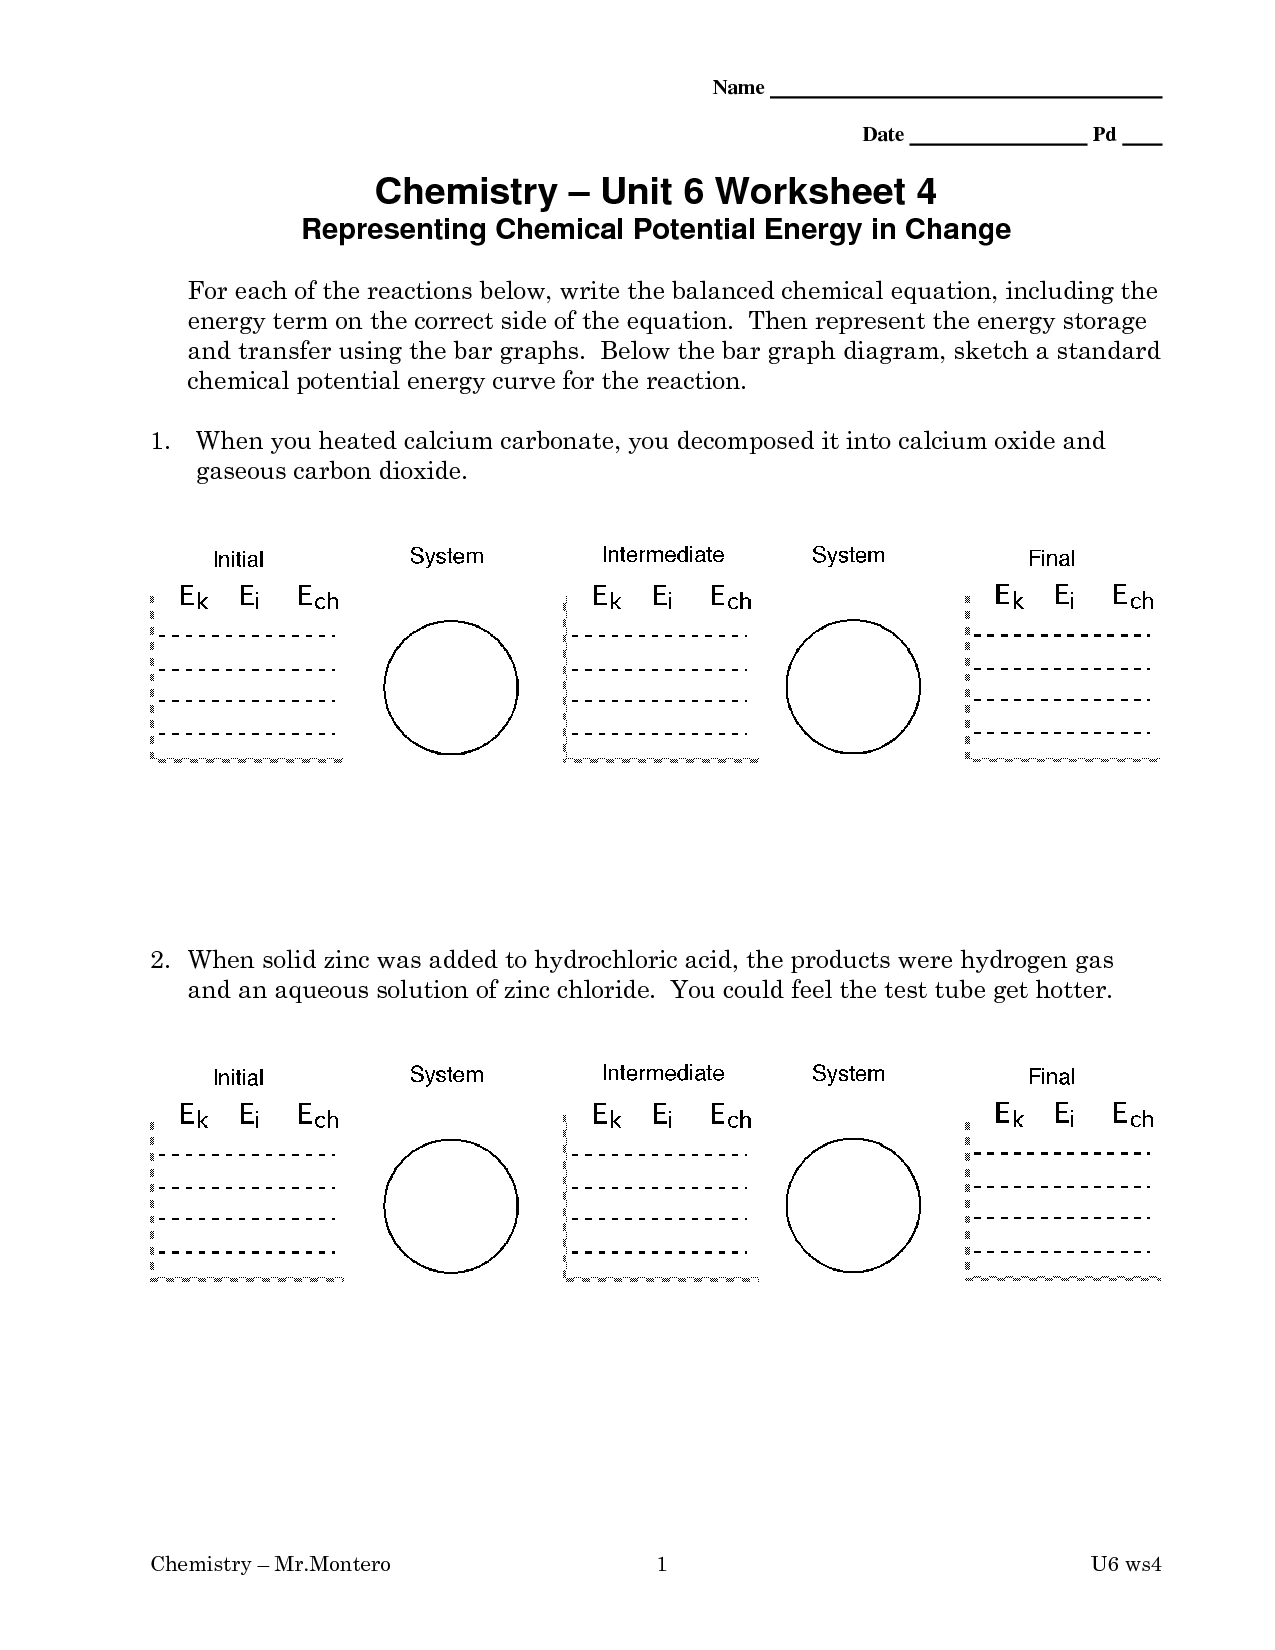 Potential Energy Diagram Worksheet Answer Key